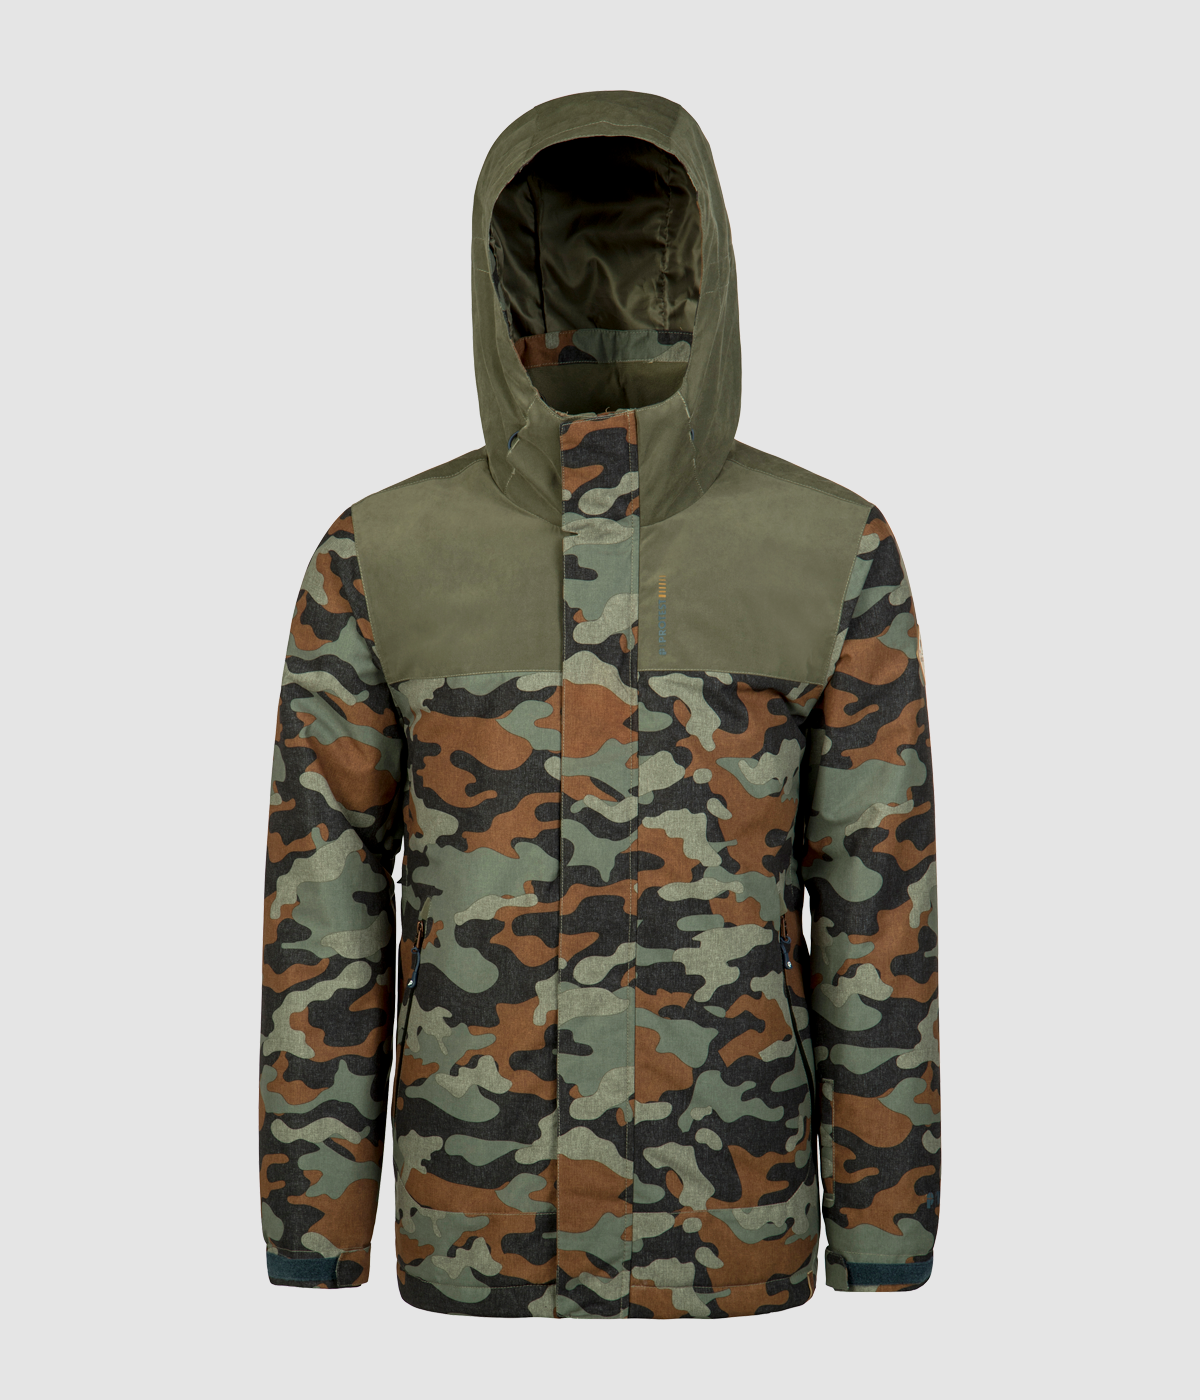 Snowjacket - Surfers' Christmas Gift Guide: Protest Decay Snowjacket